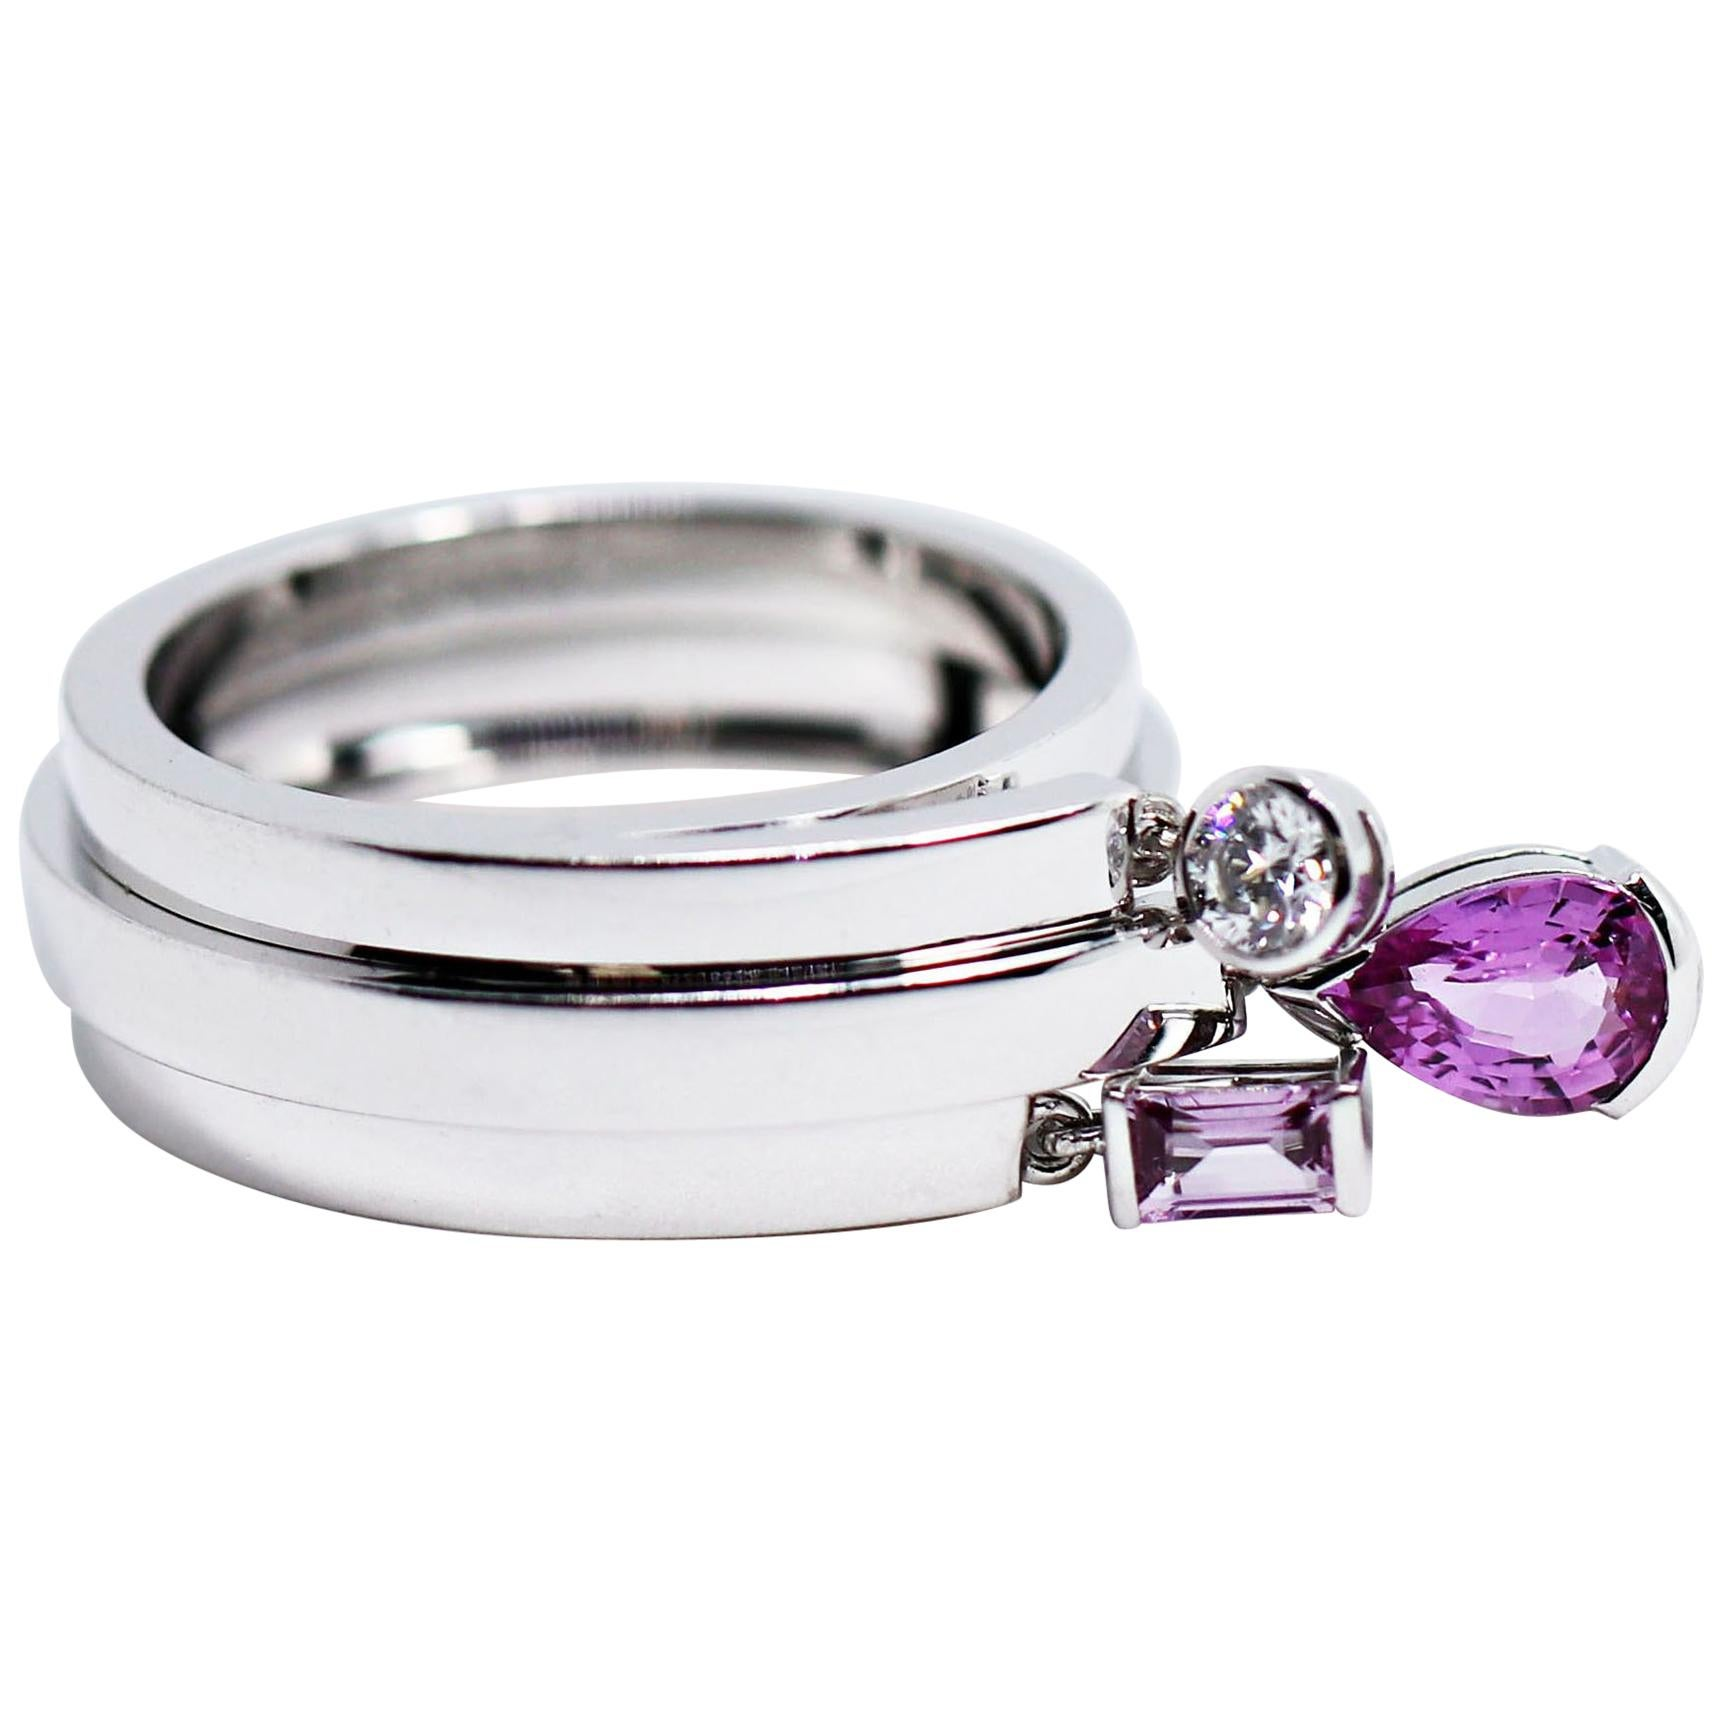 Chaumet Pink Sapphire and Diamond 18 Carat Gold Charm Ring